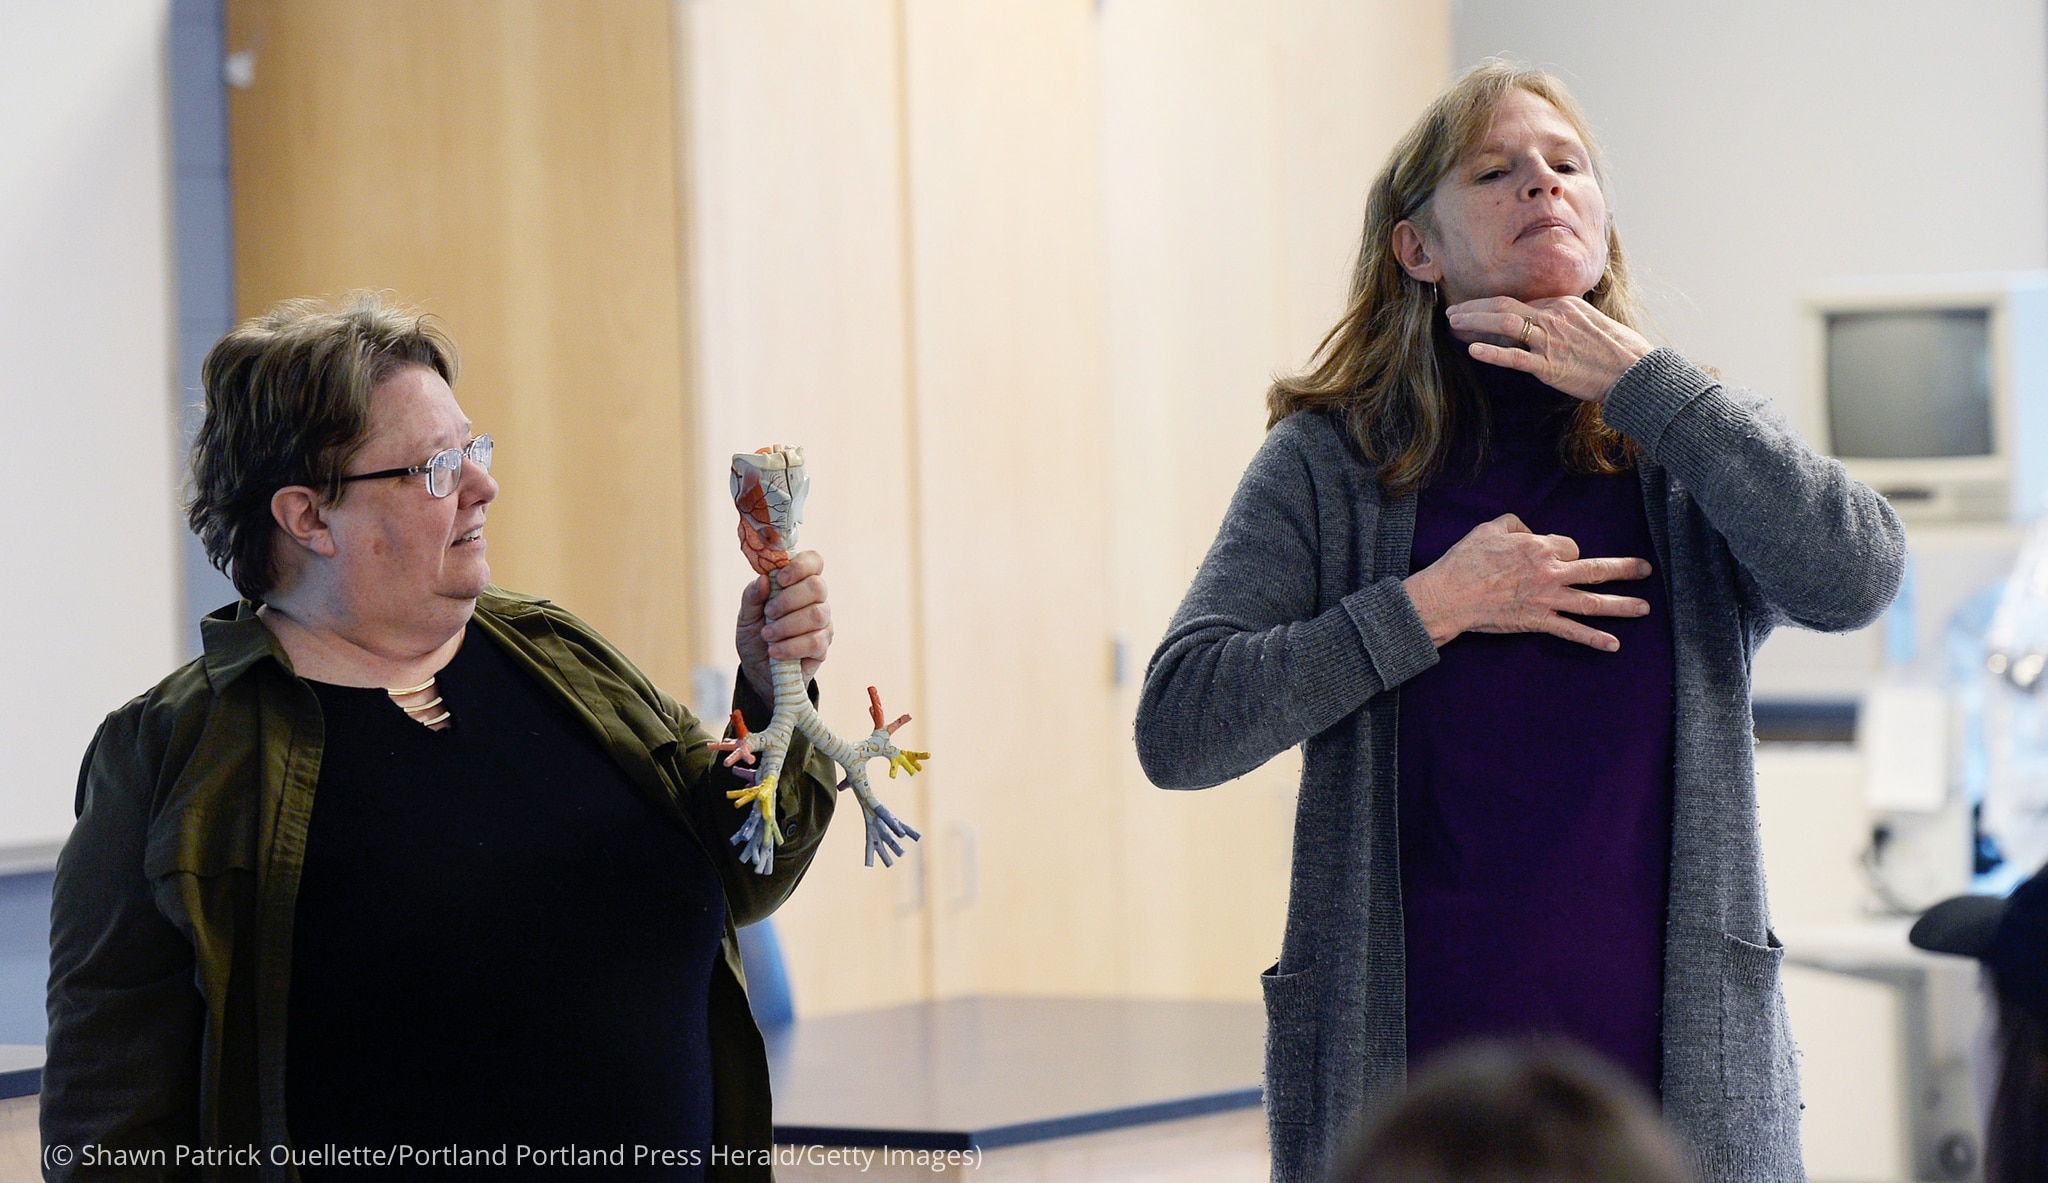 Woman holding model of trachea and bronchi, another woman tracing her windpipe with her hands (© Shawn Patrick Ouellette/Portland Portland Press Herald/Getty Images)